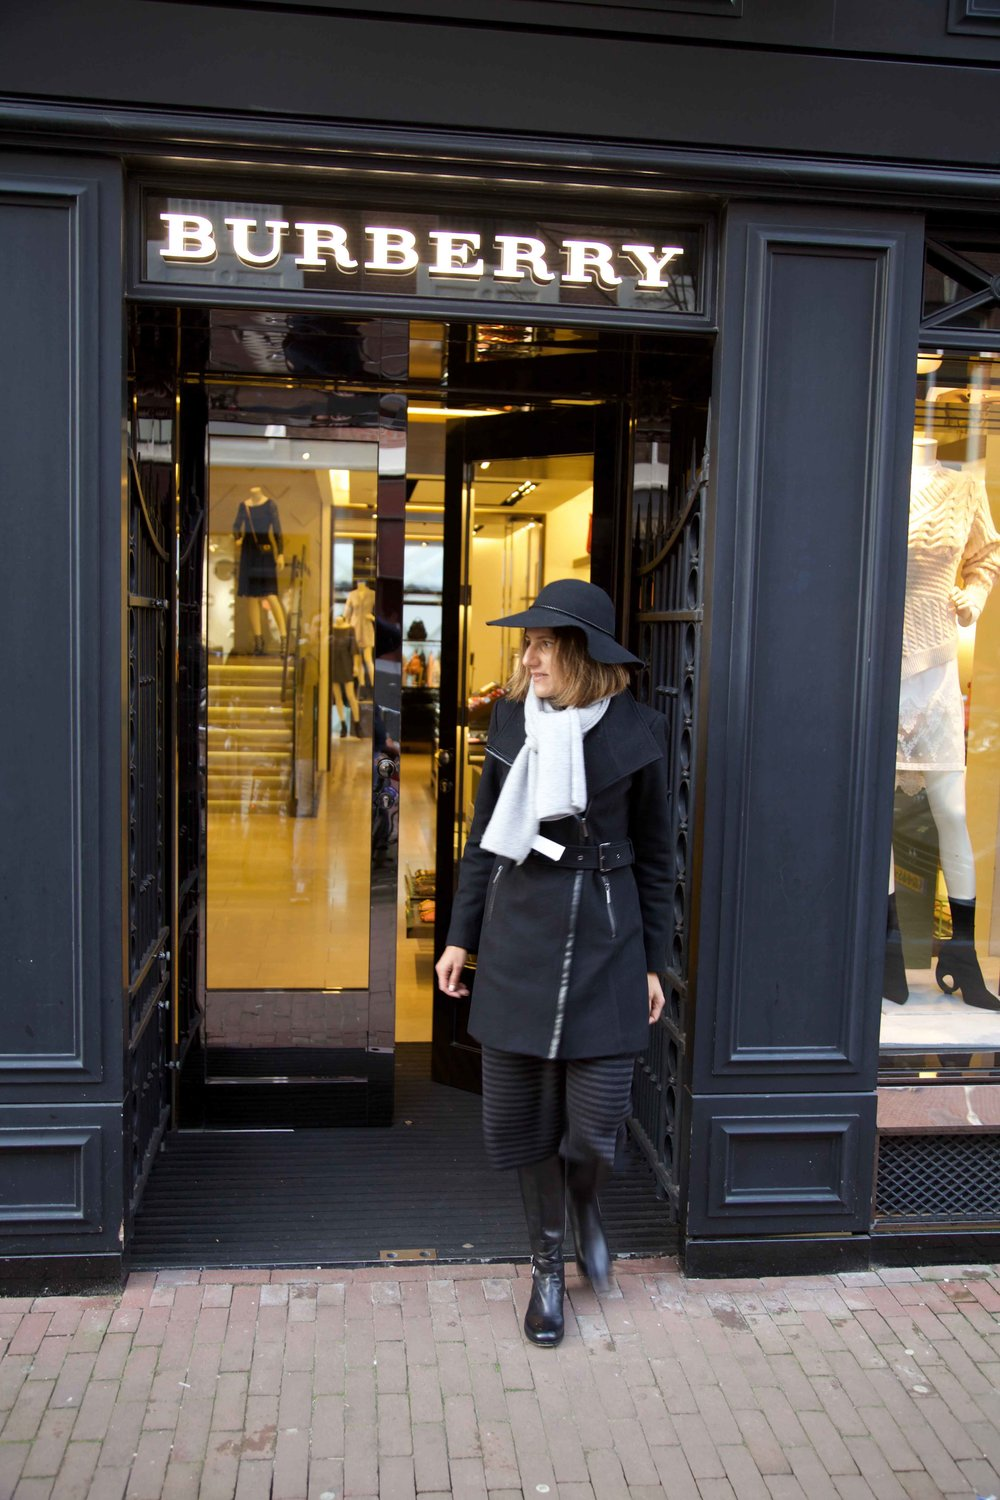 Burberry, Amsterdam. Photo: Fabio Ricci. Image©thingstodot.com